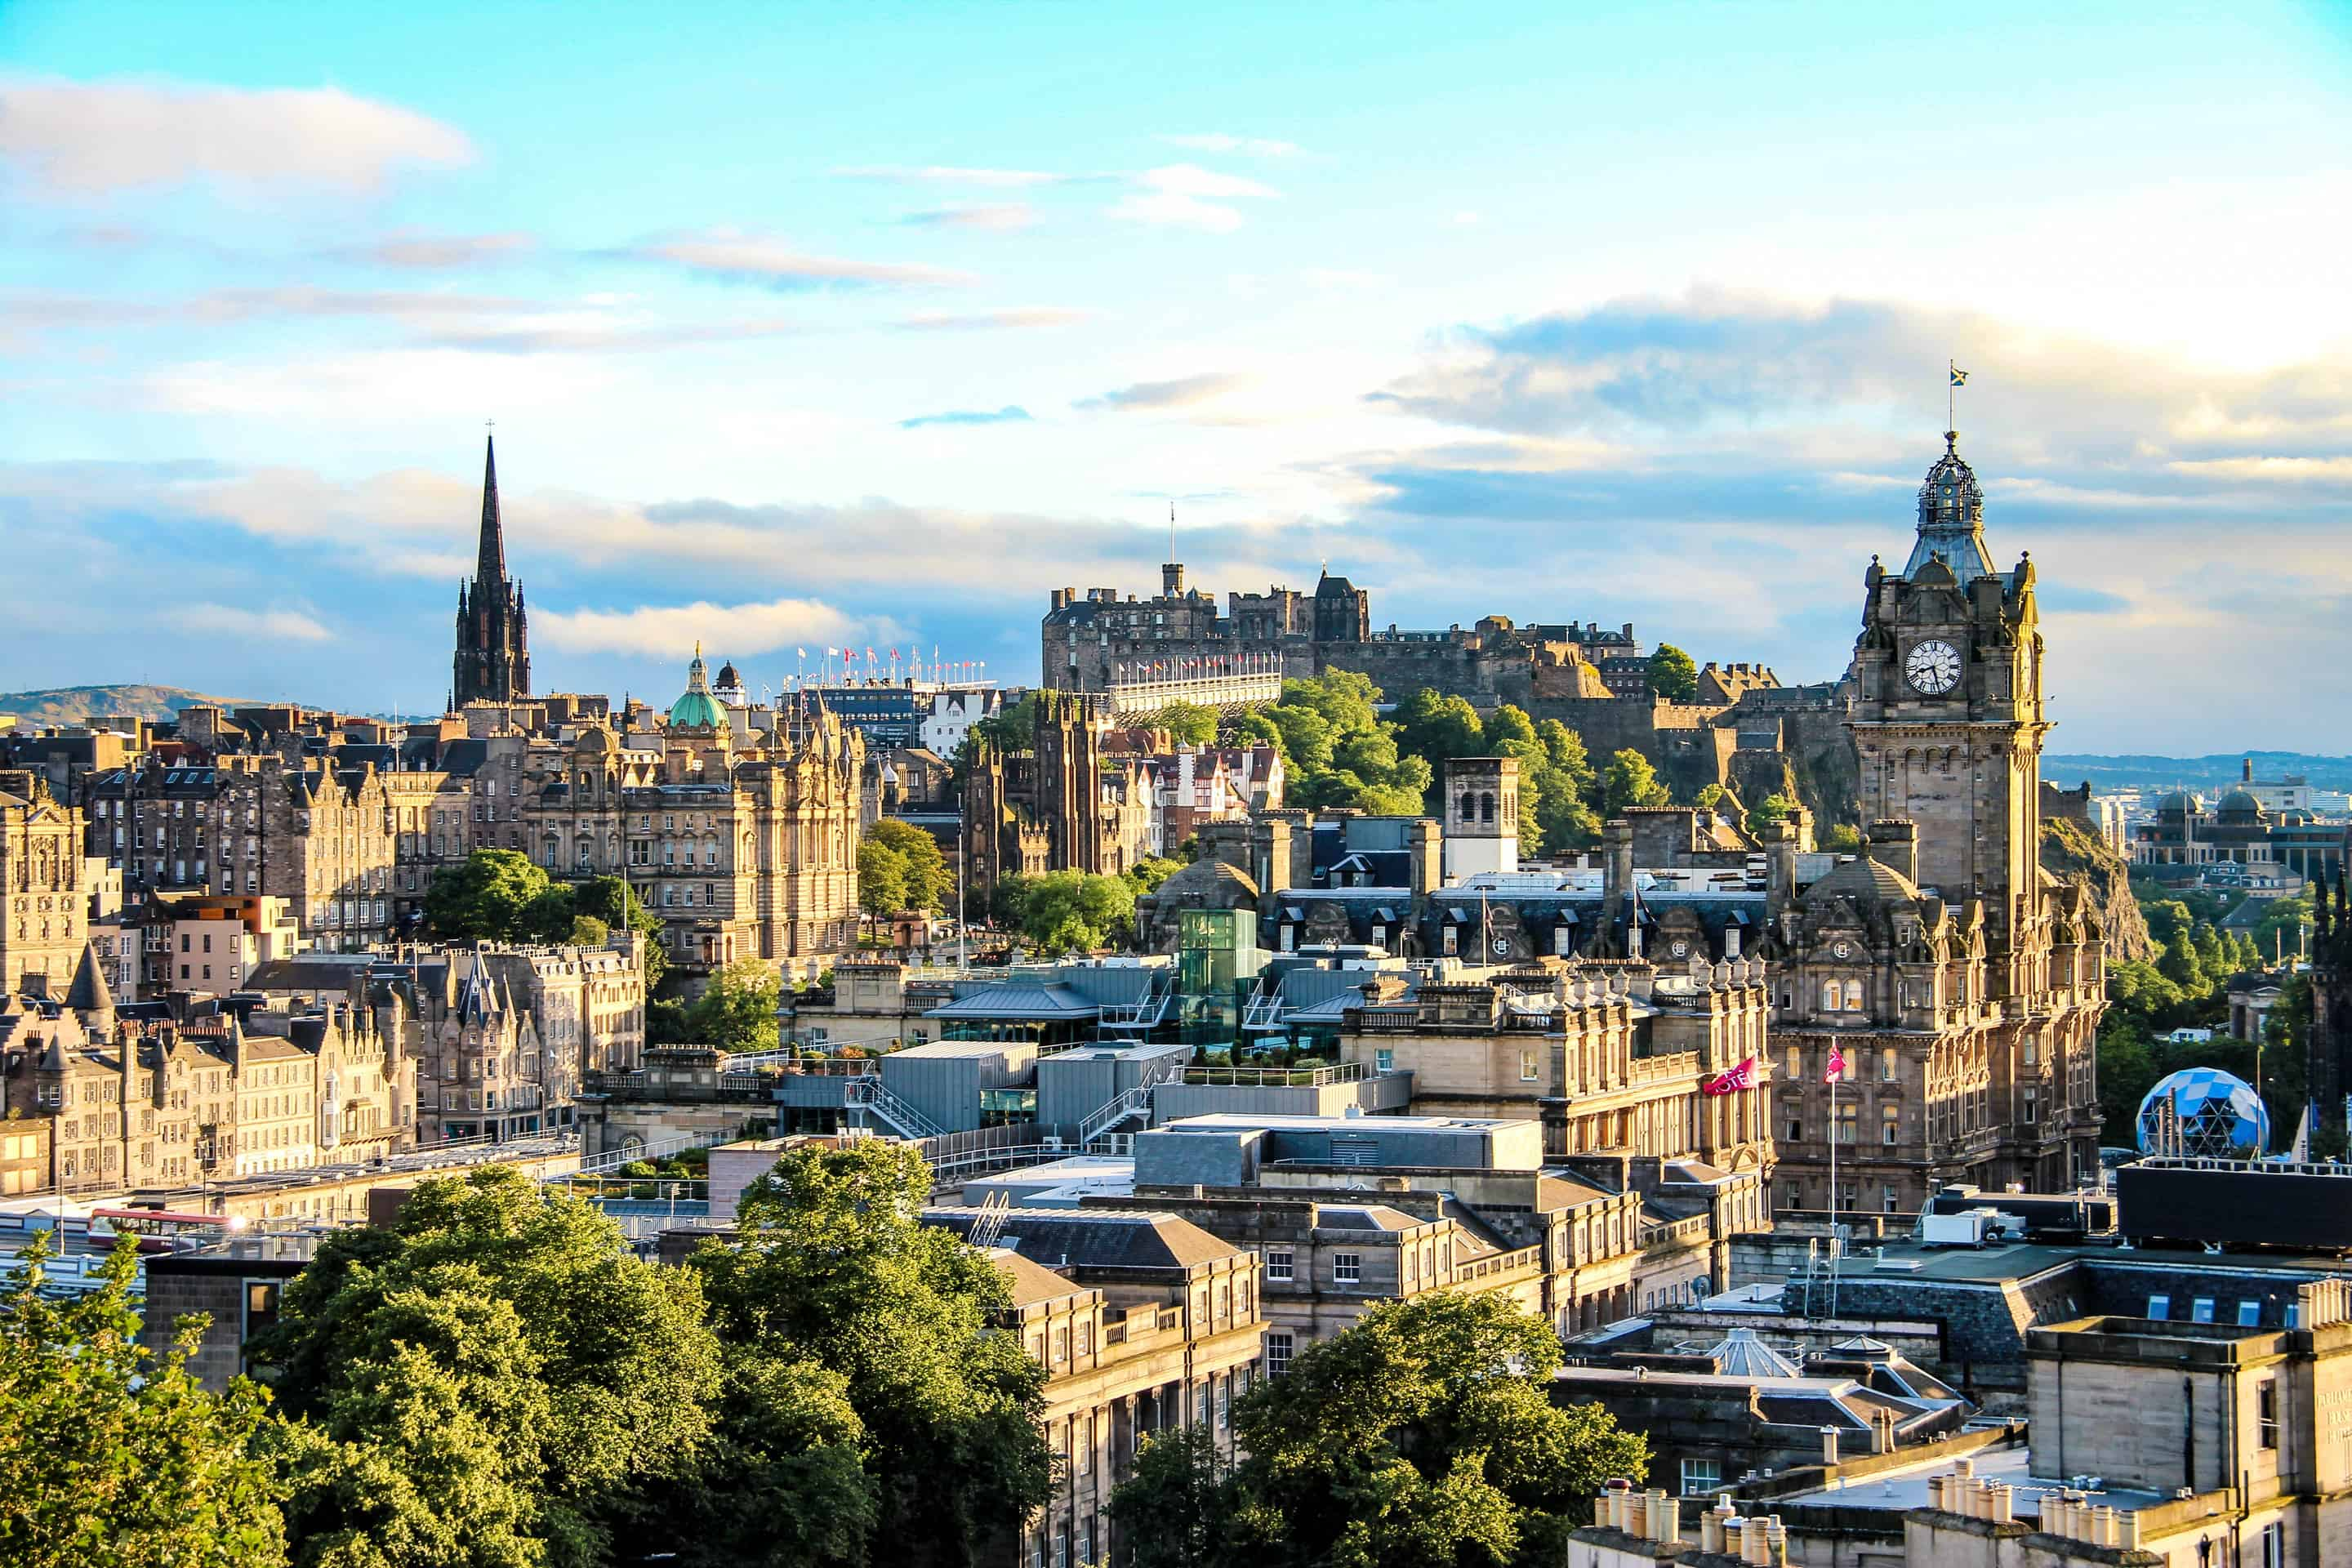 5 interesting things to see and do in edinburgh while at wem18